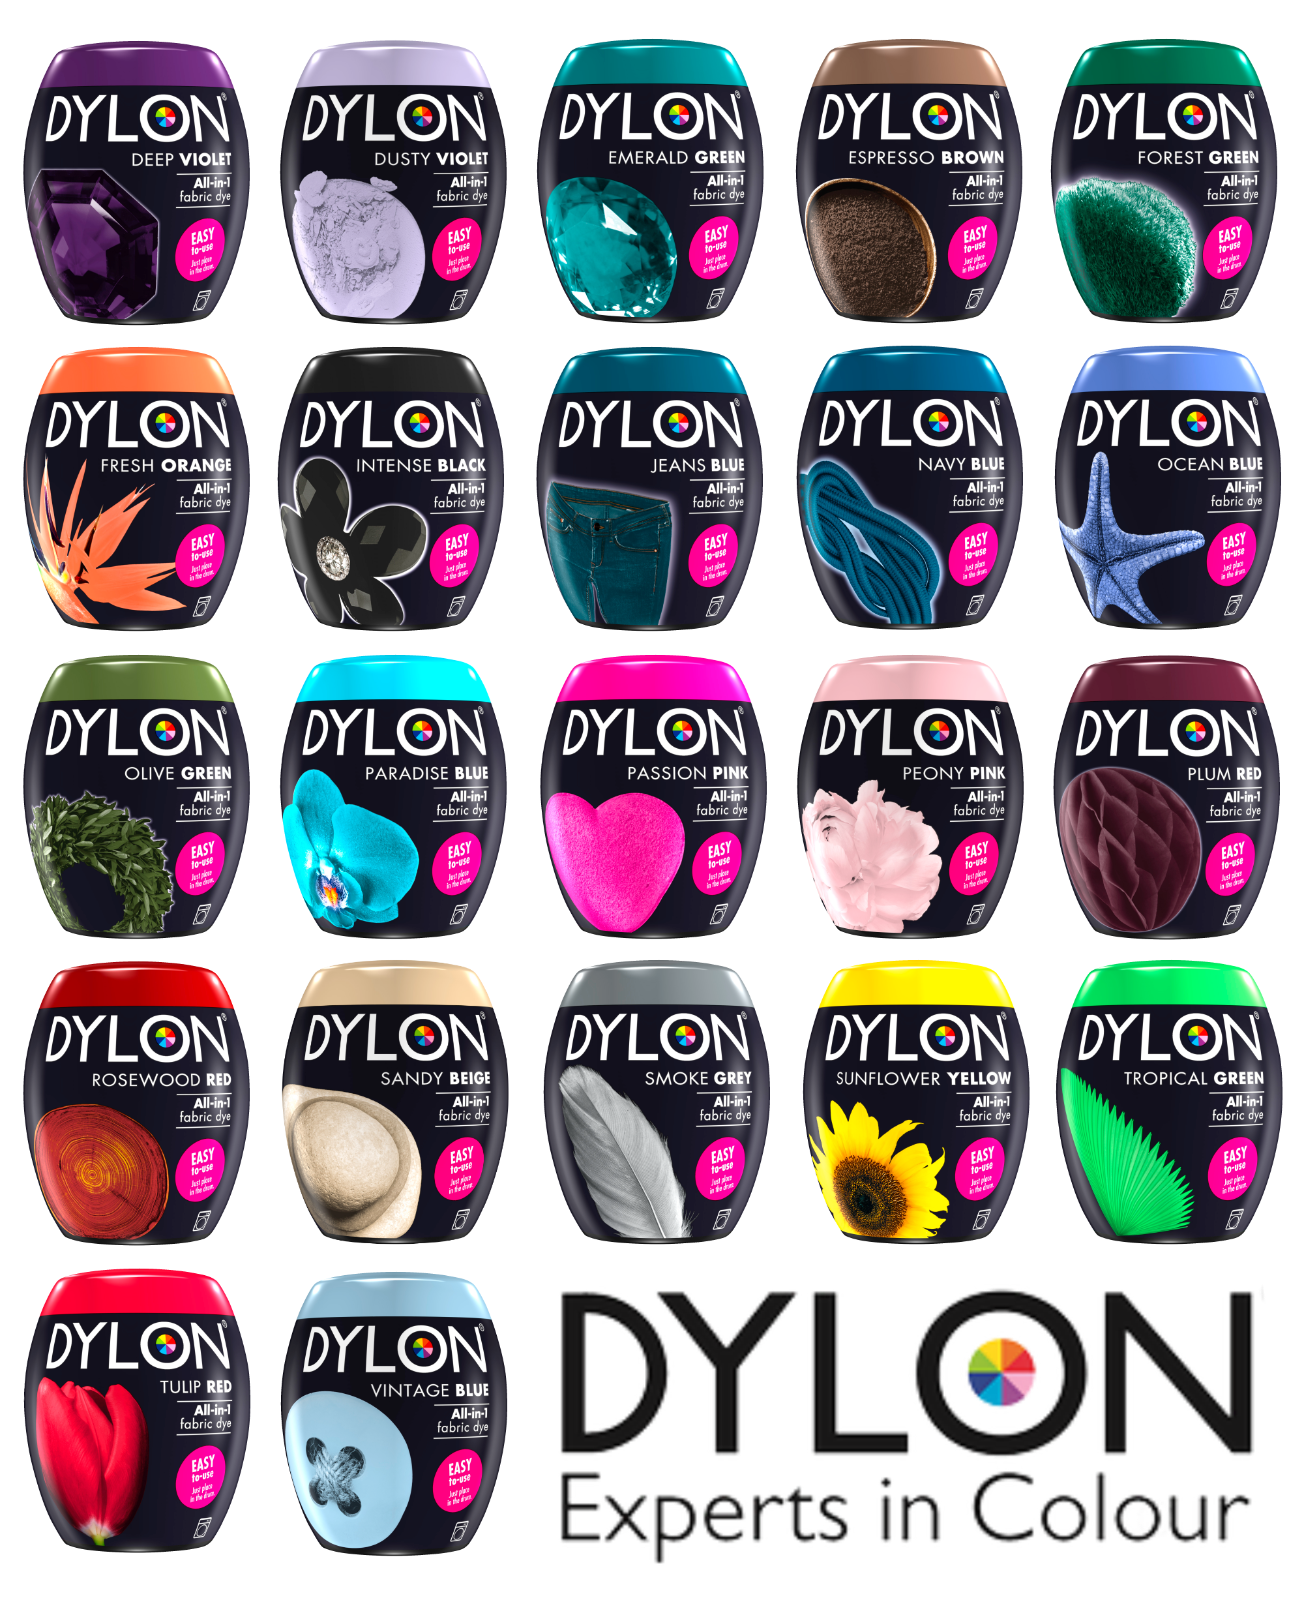 Finden, vergleichen, kaufen - DYLON Machine Dye Pods 350g - Full Range of Colours Available! auf eBay.co.uk ab 3.99 GBP